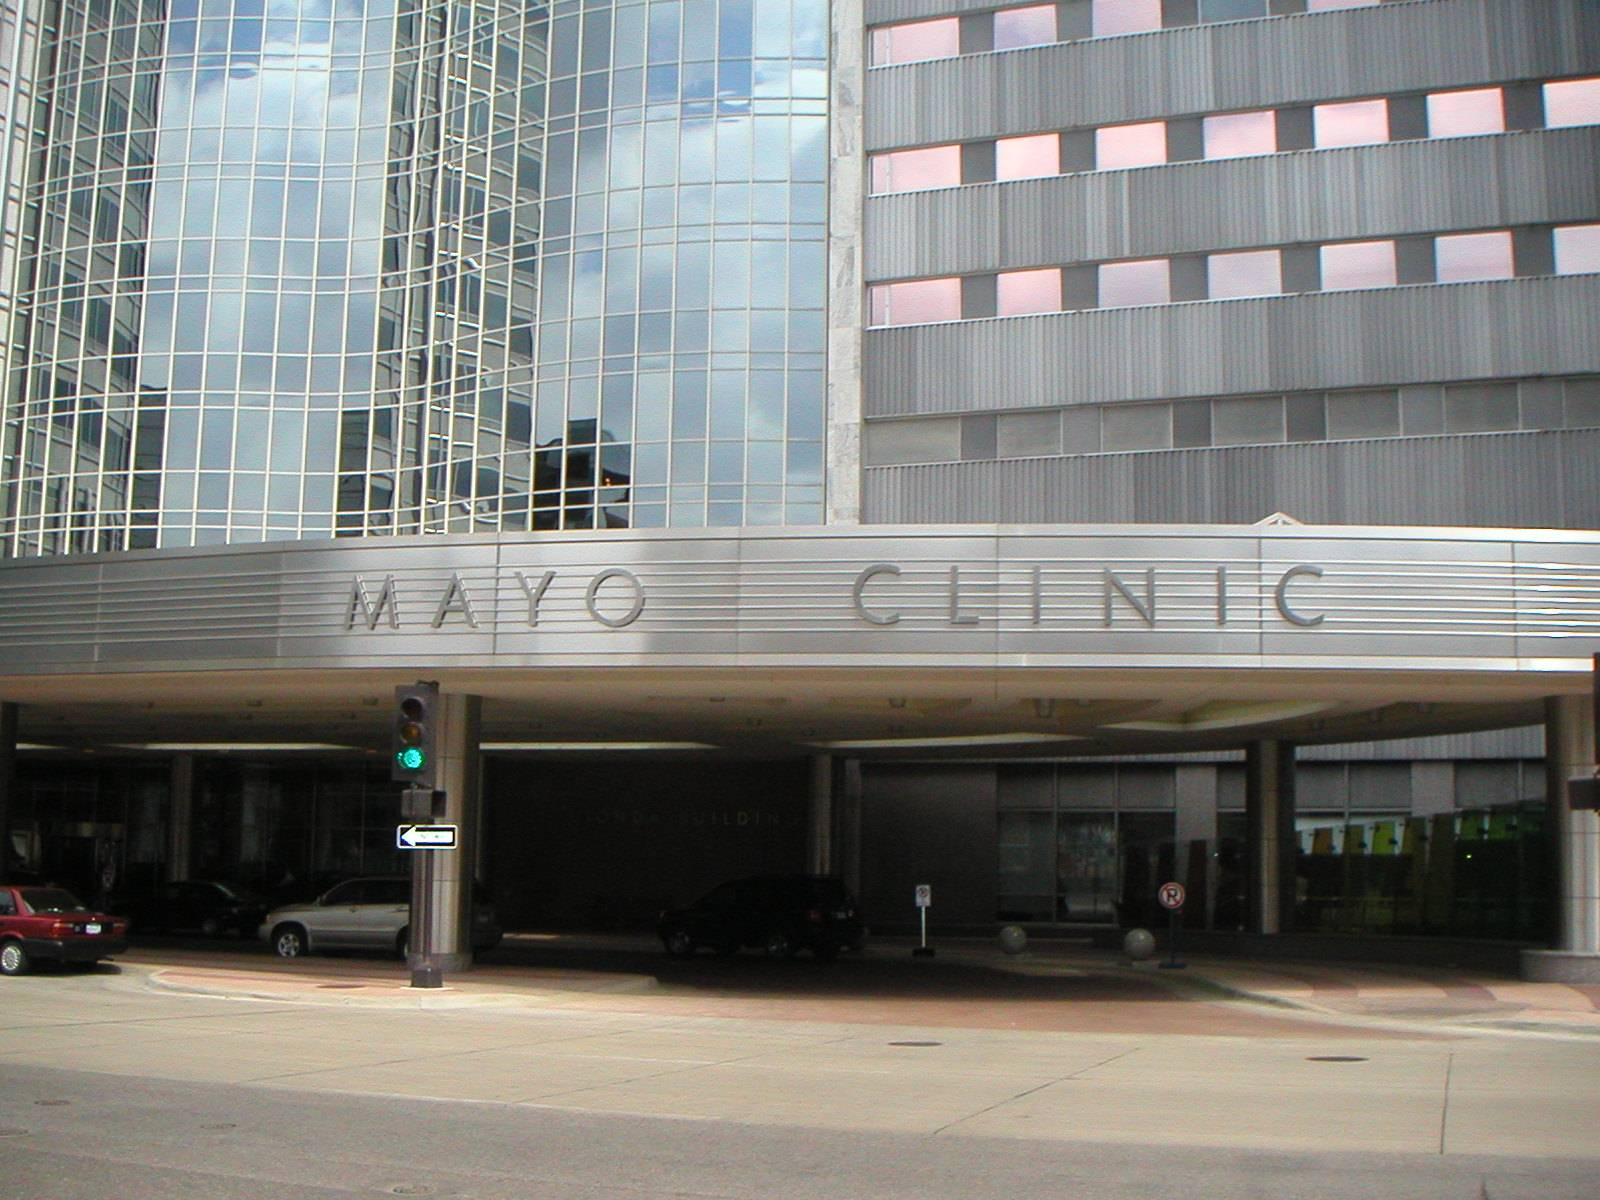 Where is the mayo clinic : Ualberta residence meal plan